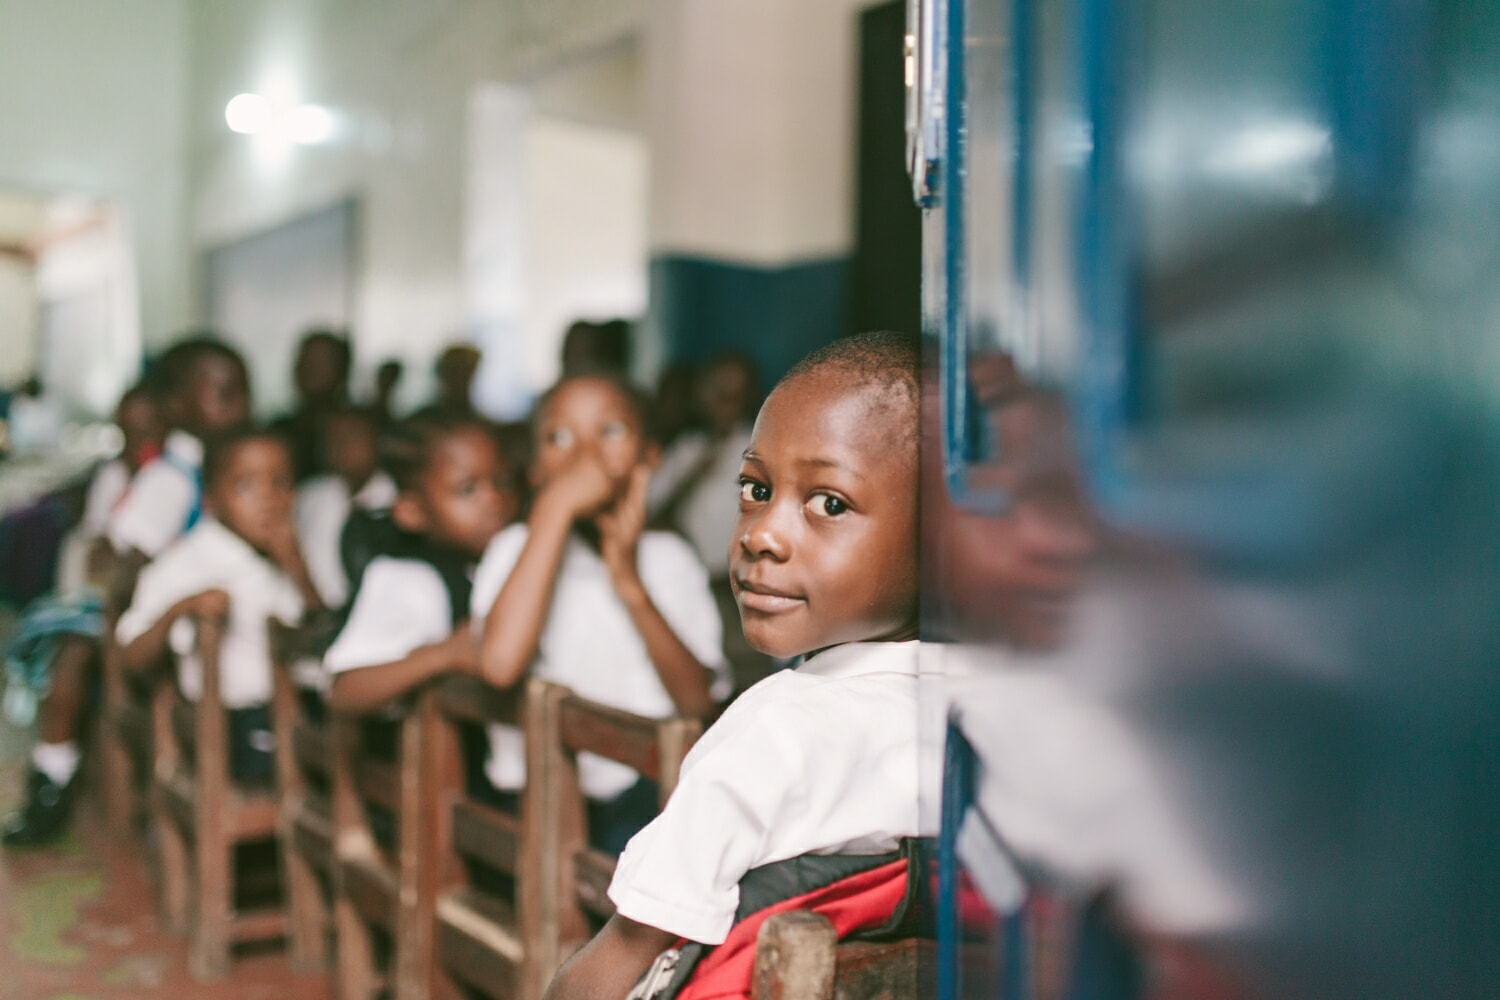 Student in Liberia attending public education institution in Africa